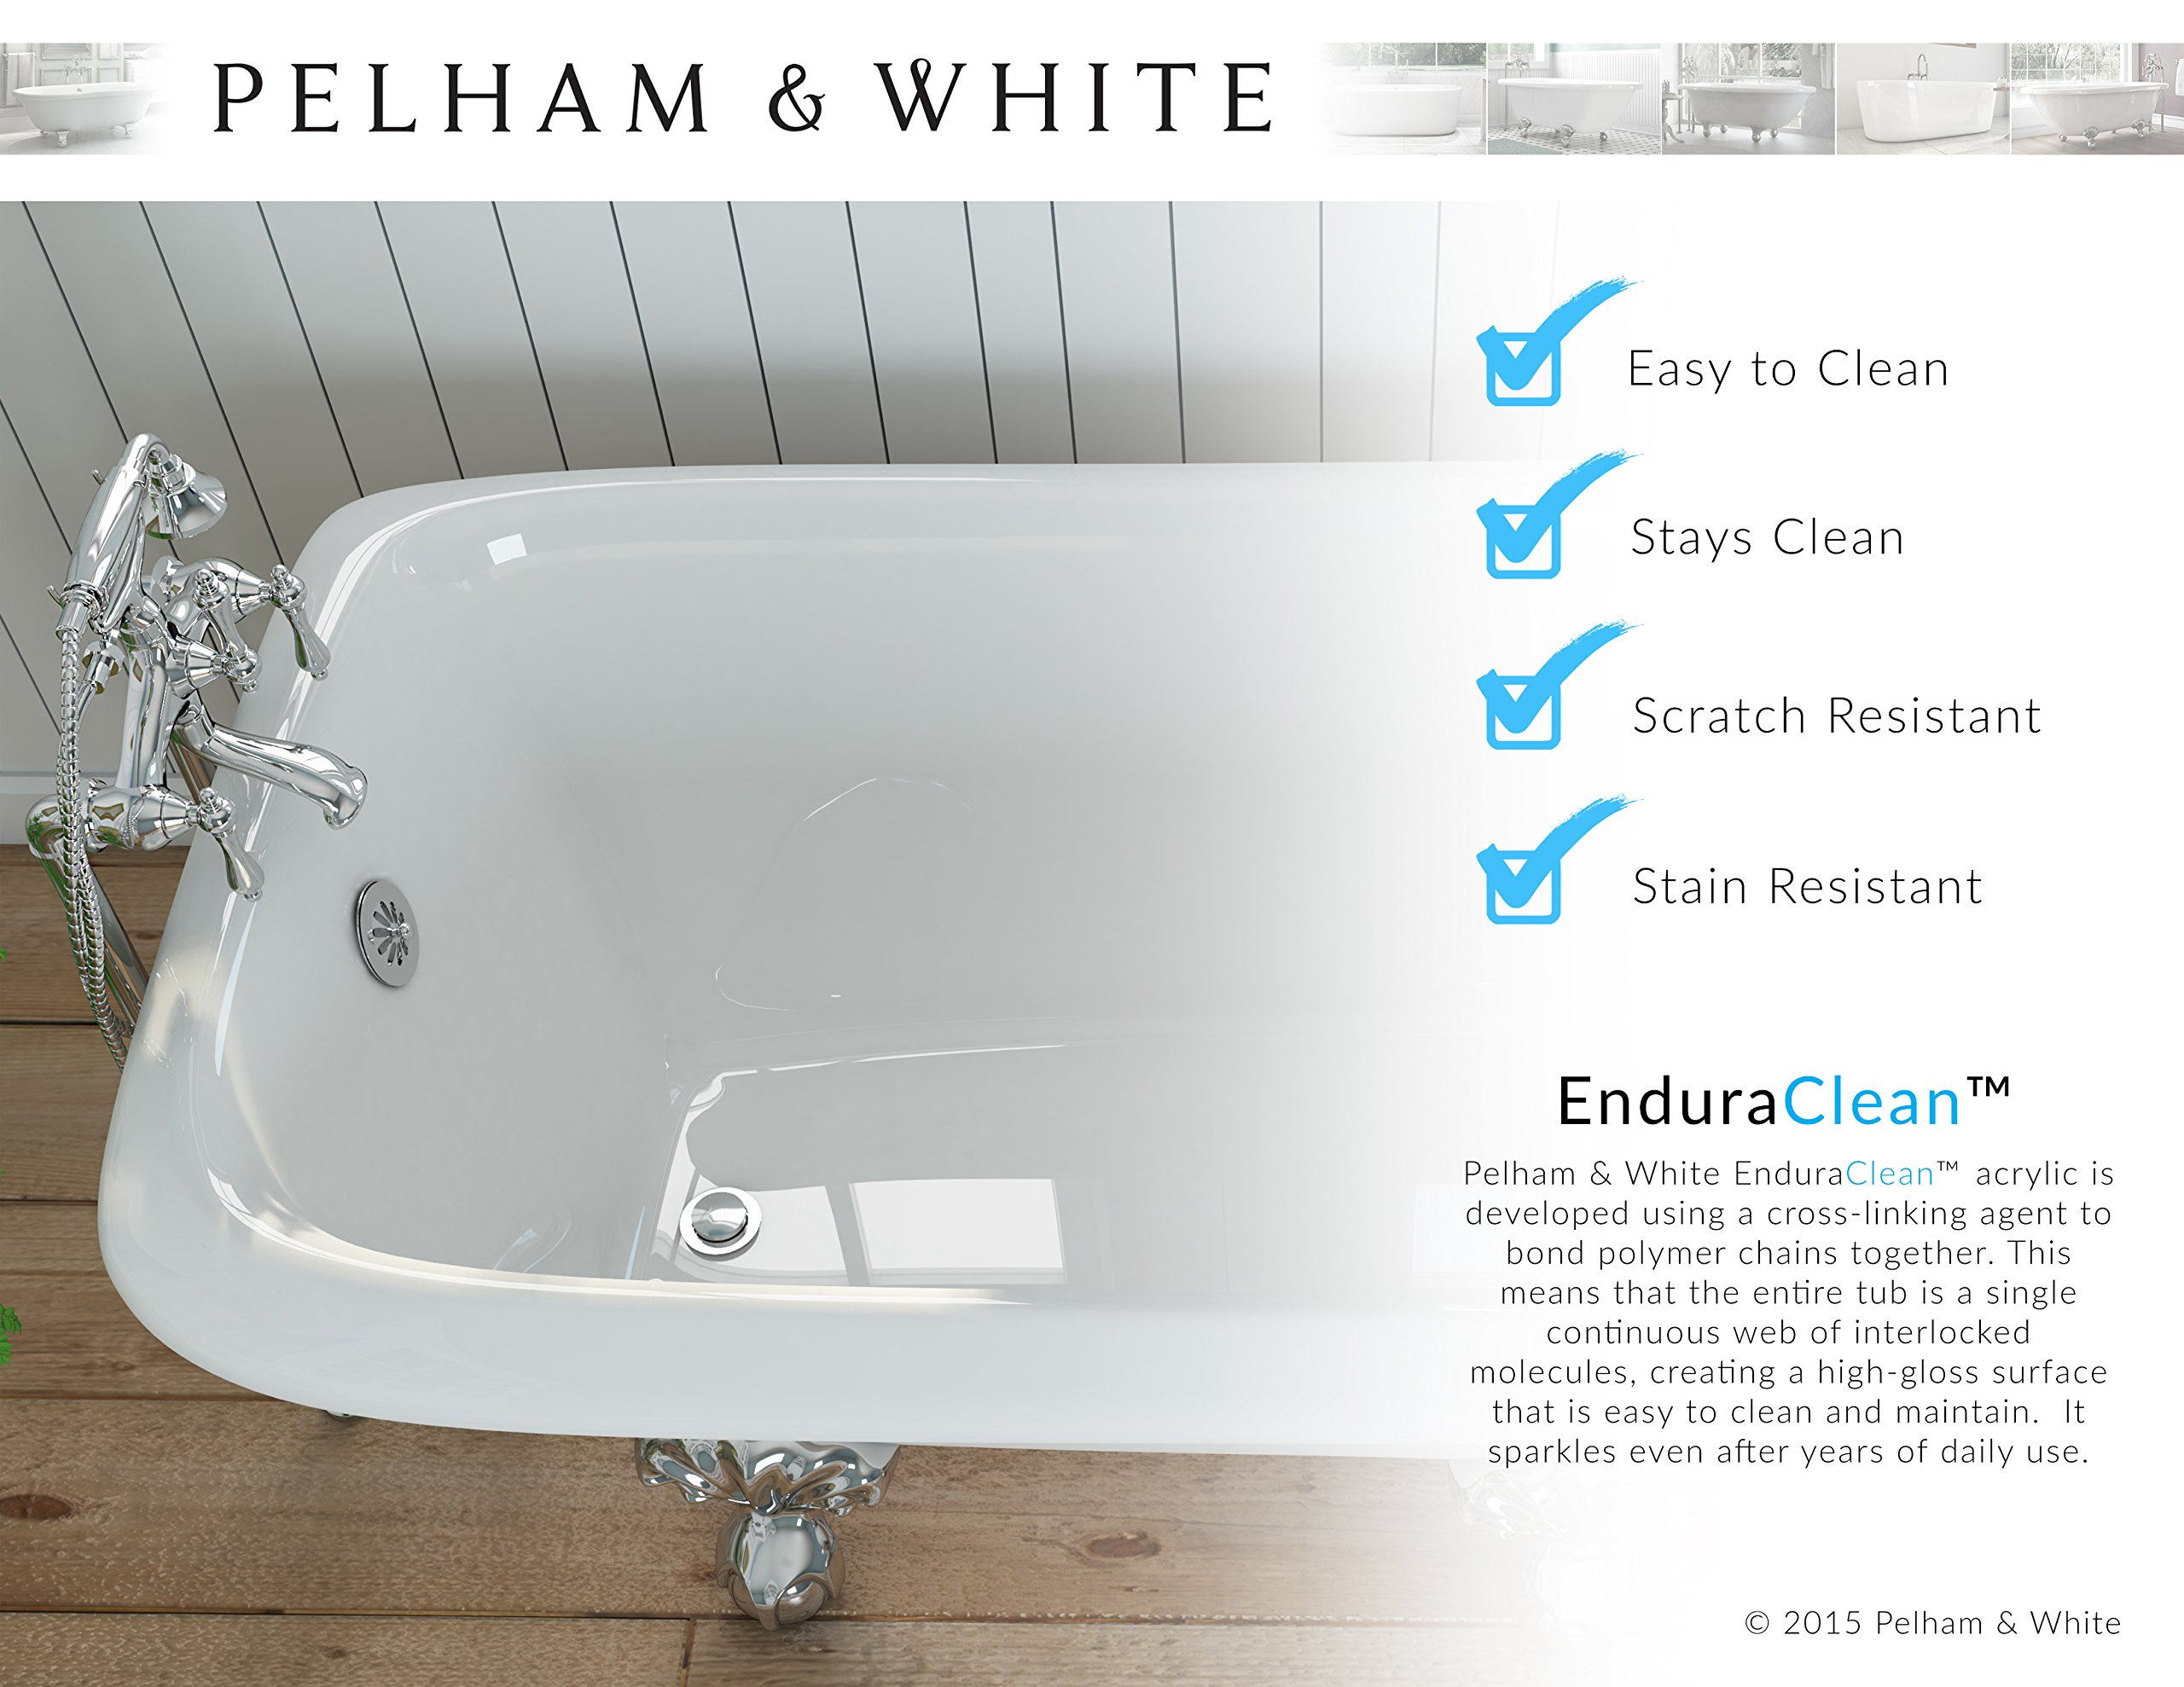 Luxury 60 inch Modern Clawfoot Tub in White with Stand-Alone Freestanding Tub Design, Includes Modern Brushed Nickel Cannonball Feet and Drain, From The Brookdale Collection by Pelham & White (Image #8)